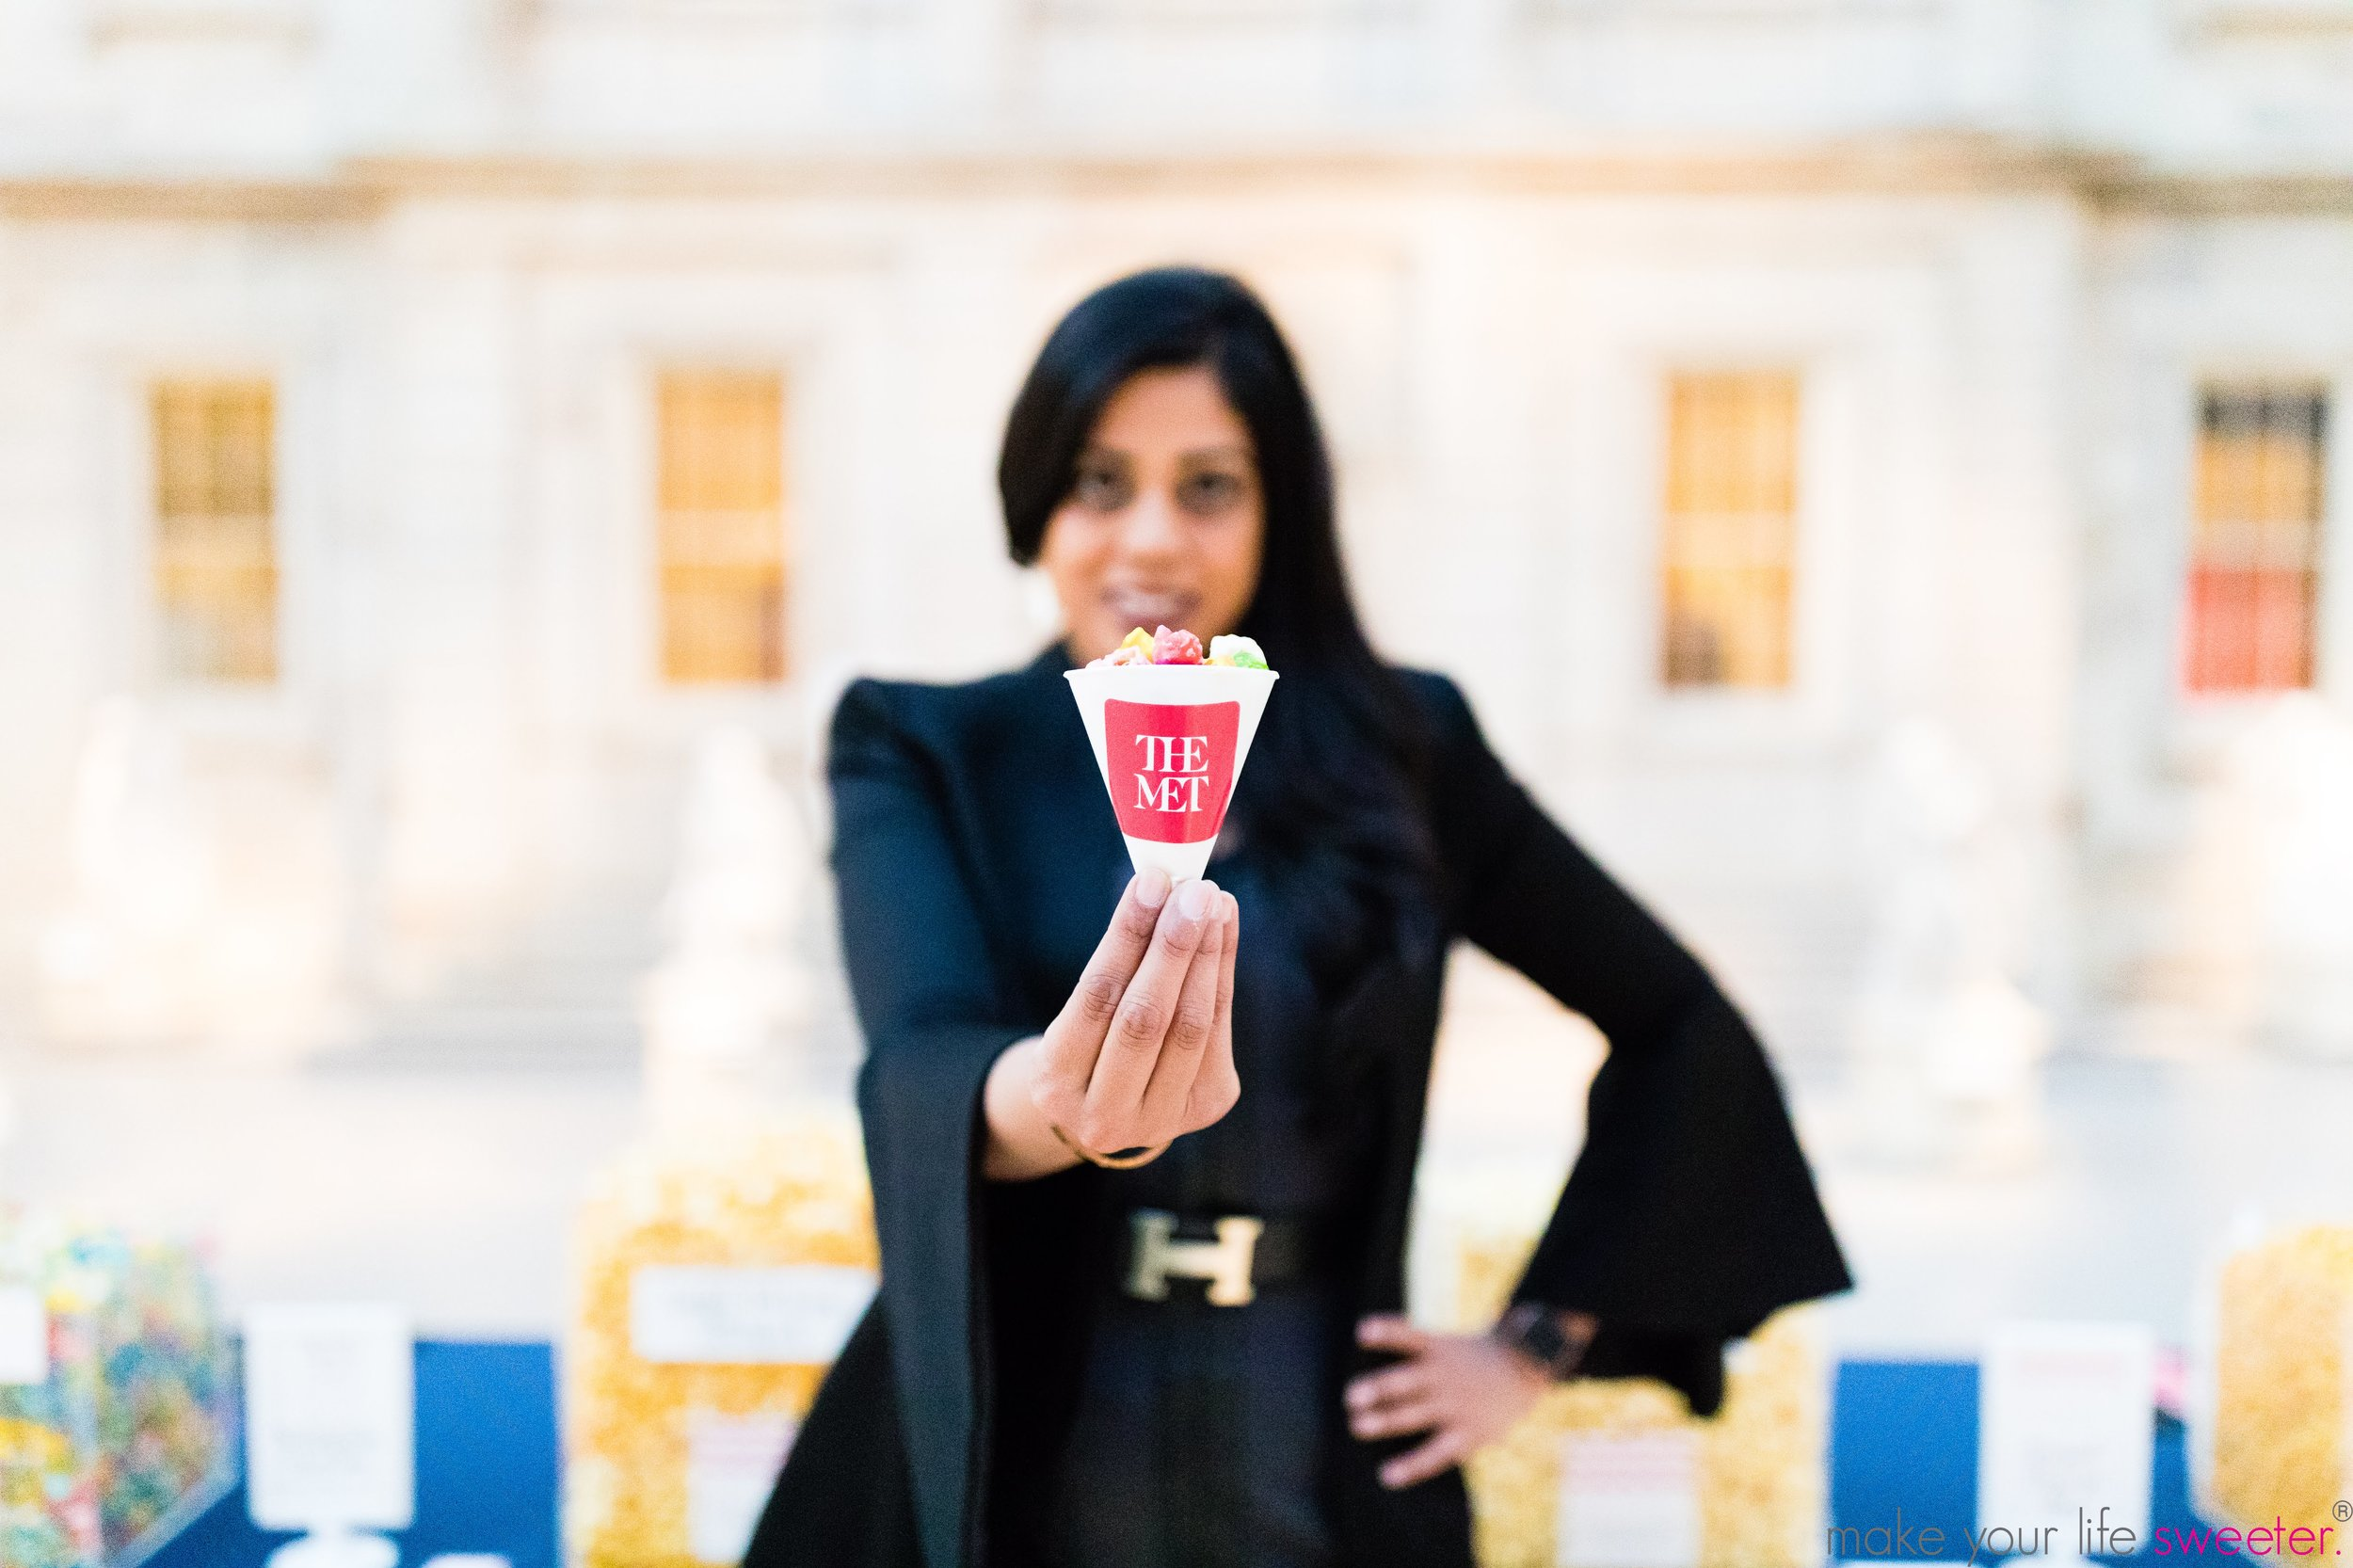 Make Your Life Sweeter Events - The Met Grand Tour - HotPoppin Gourmet Popcorn Bar with customized Met cones